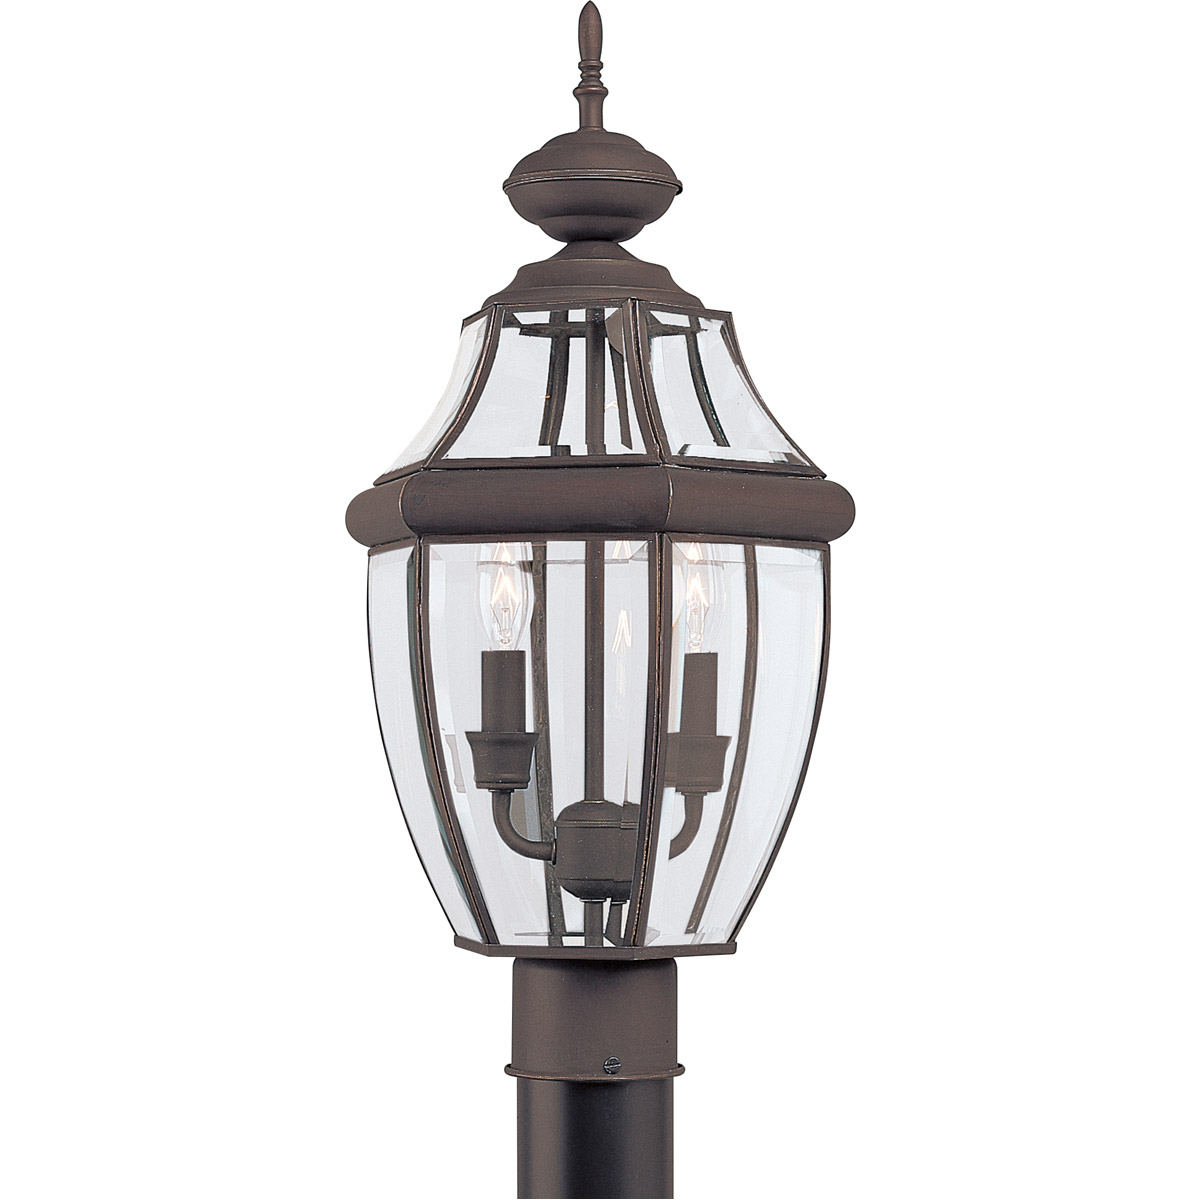 Sea Gull Lighting Lancaster 2 Light Outdoor Post Lantern in Antique Bronze 8229-71